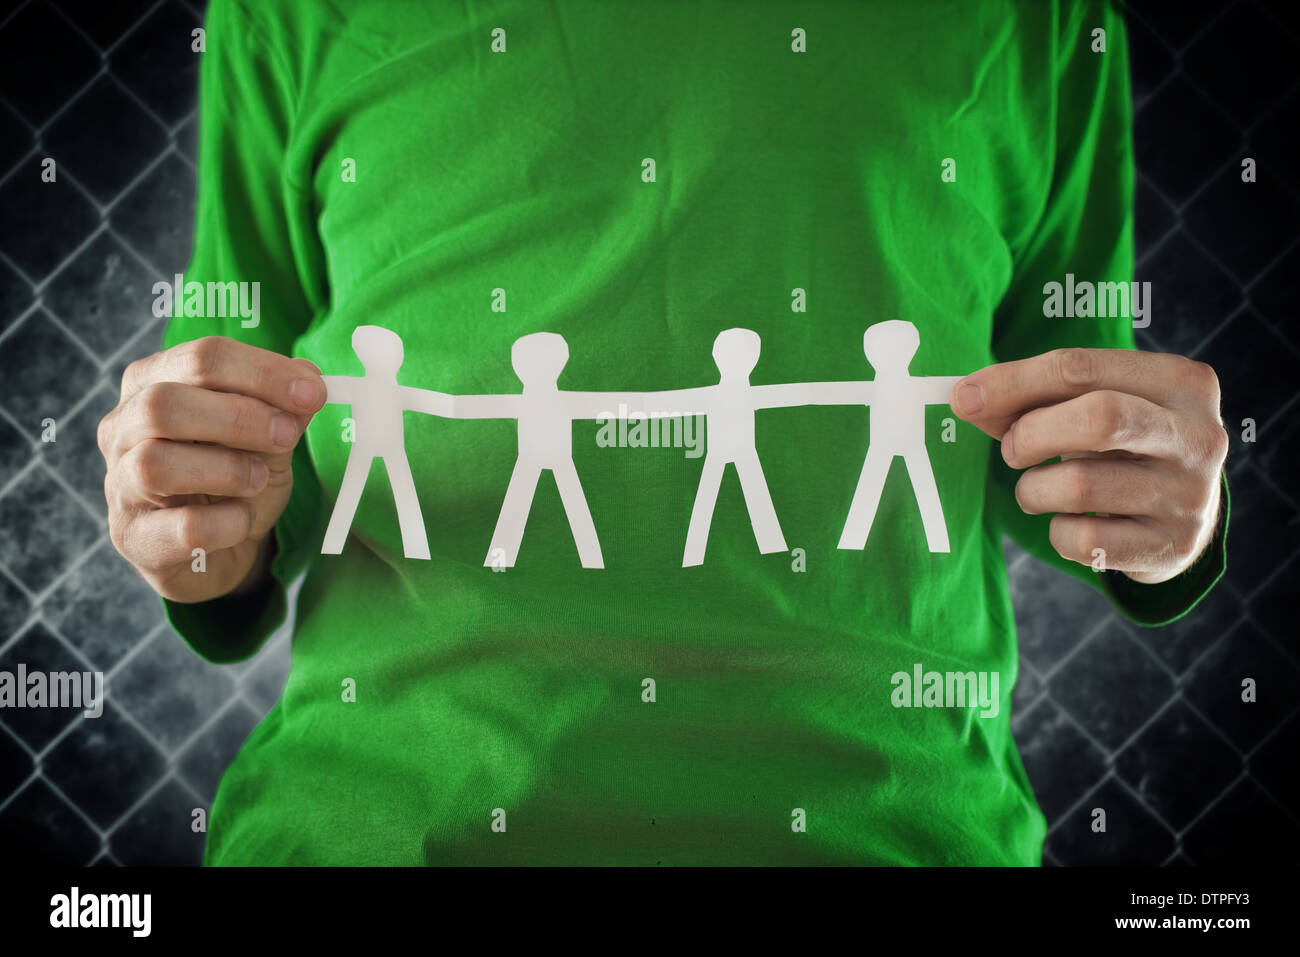 Man holding chain of people paper cuts, teamwork concept. Stock Photo